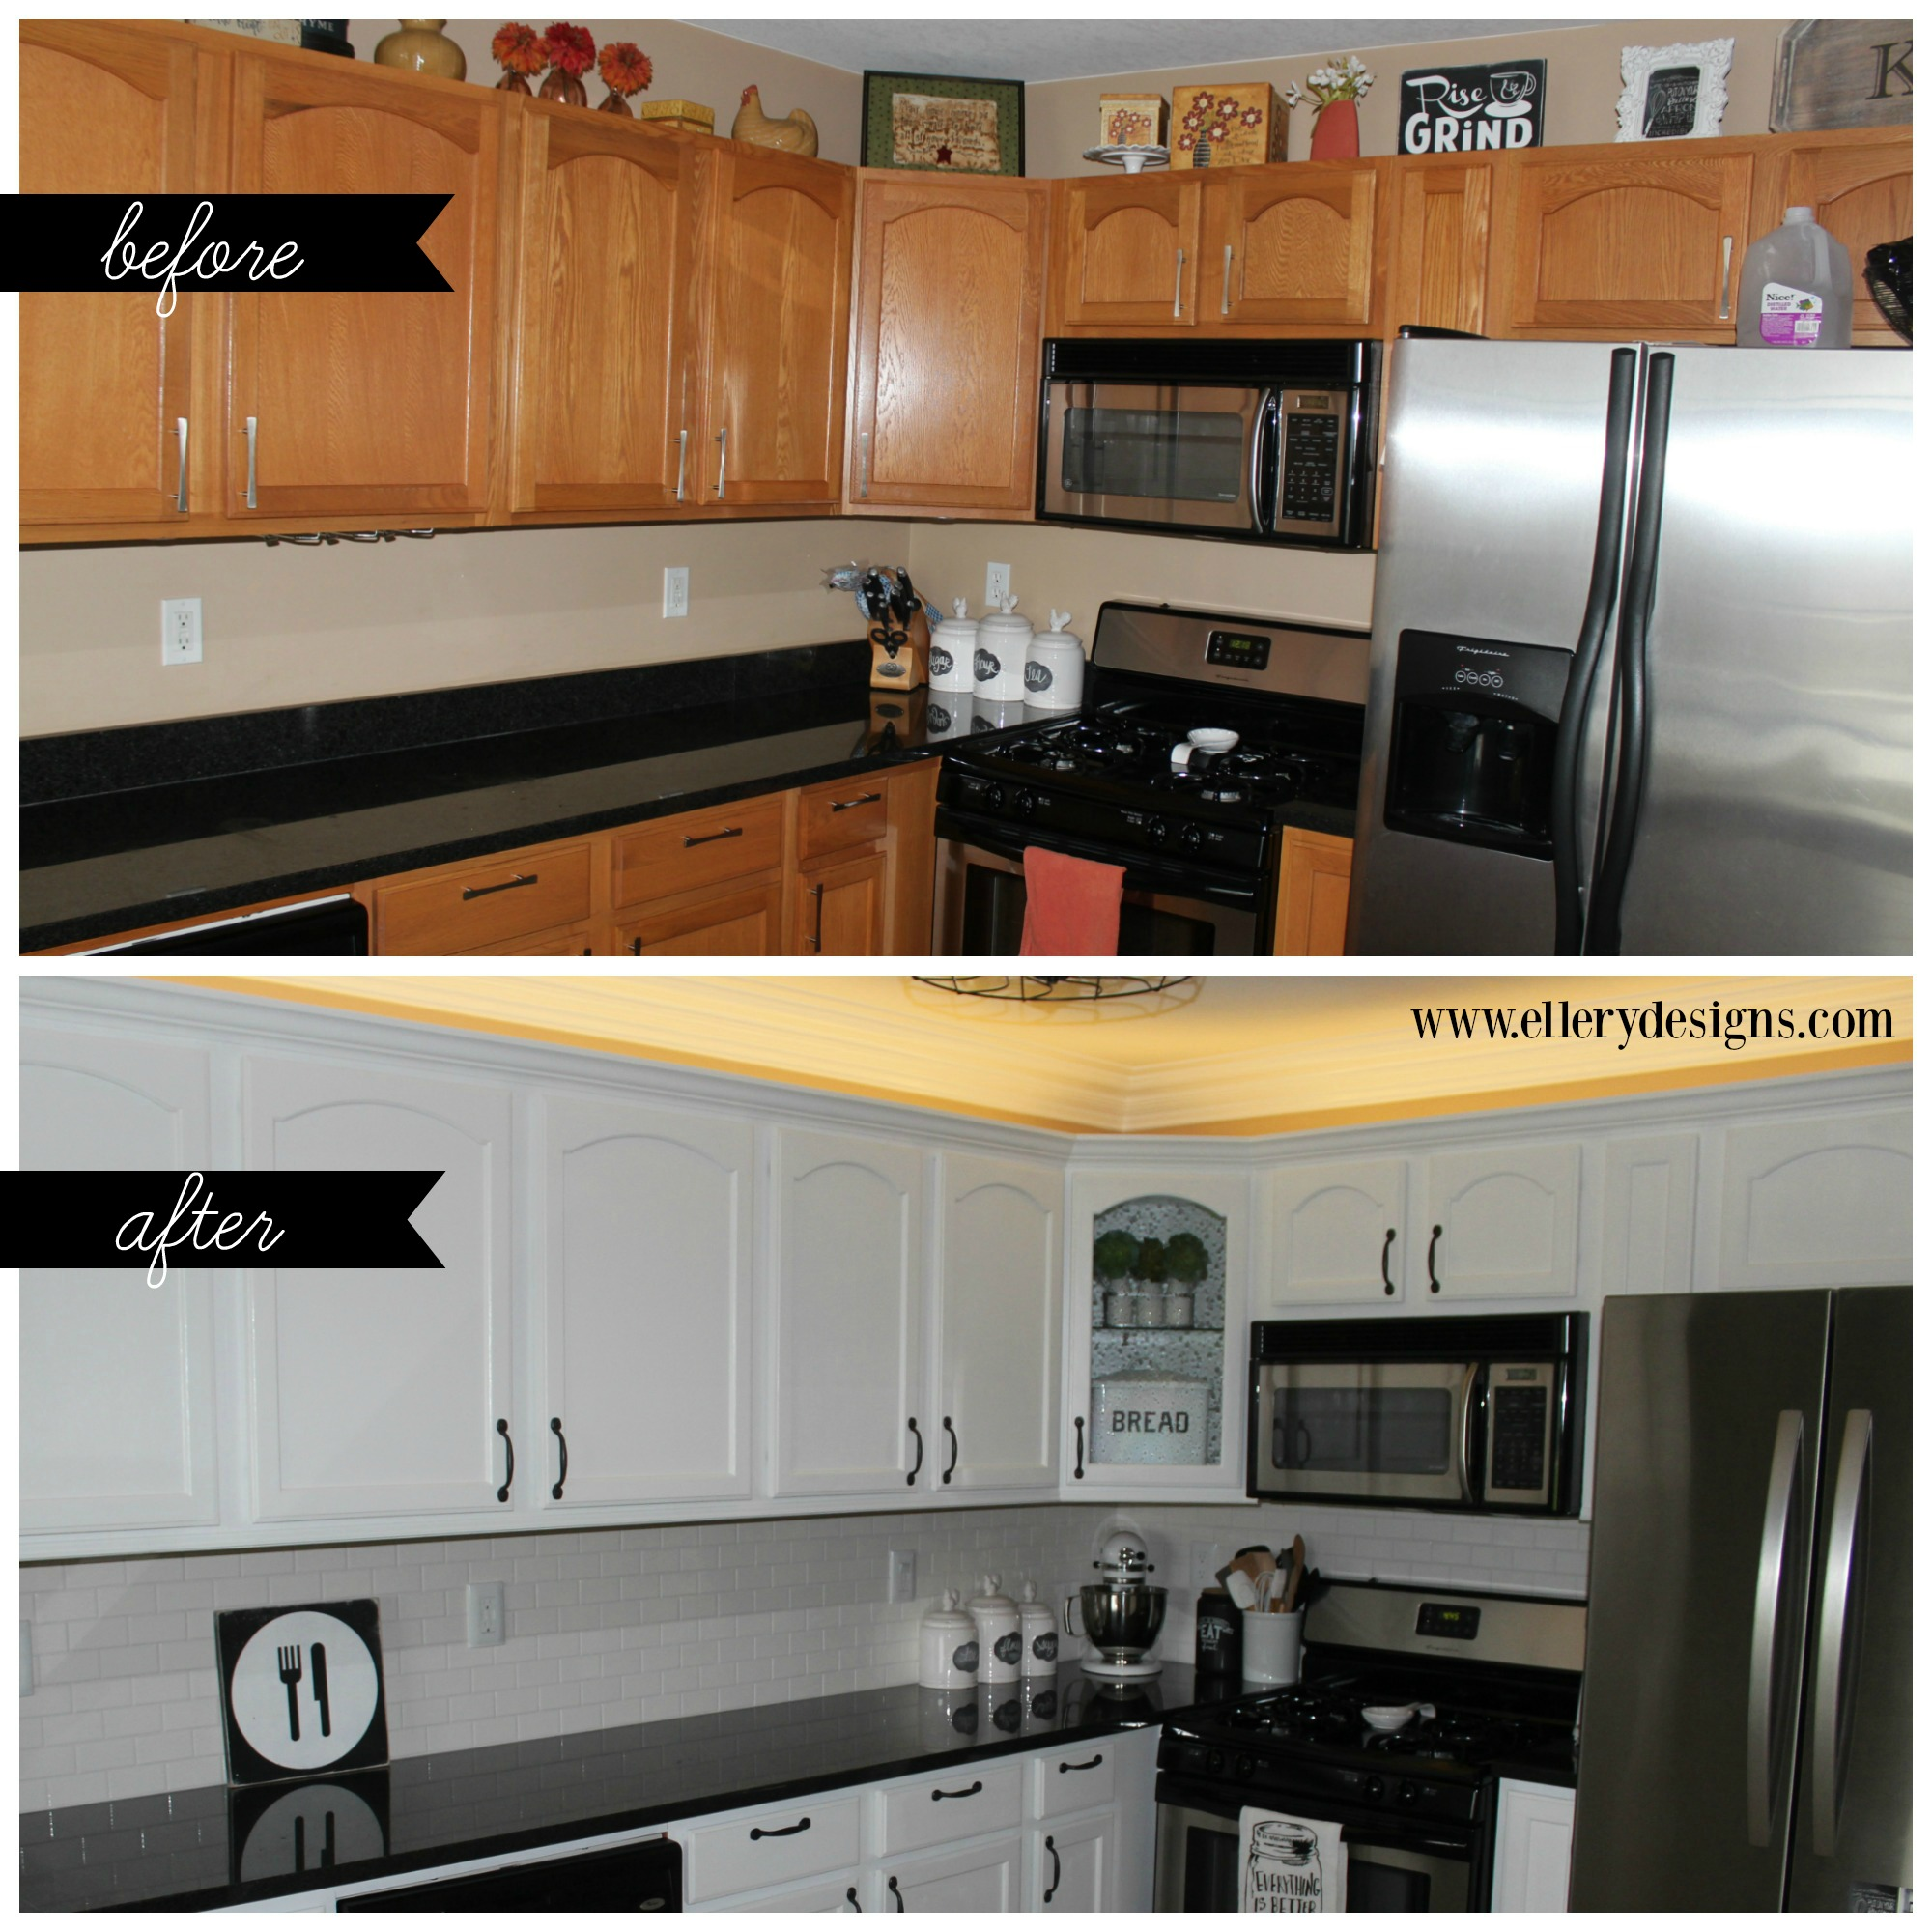 Diy Kitchen Remodel Ideas: Our DIY Kitchen Remodel